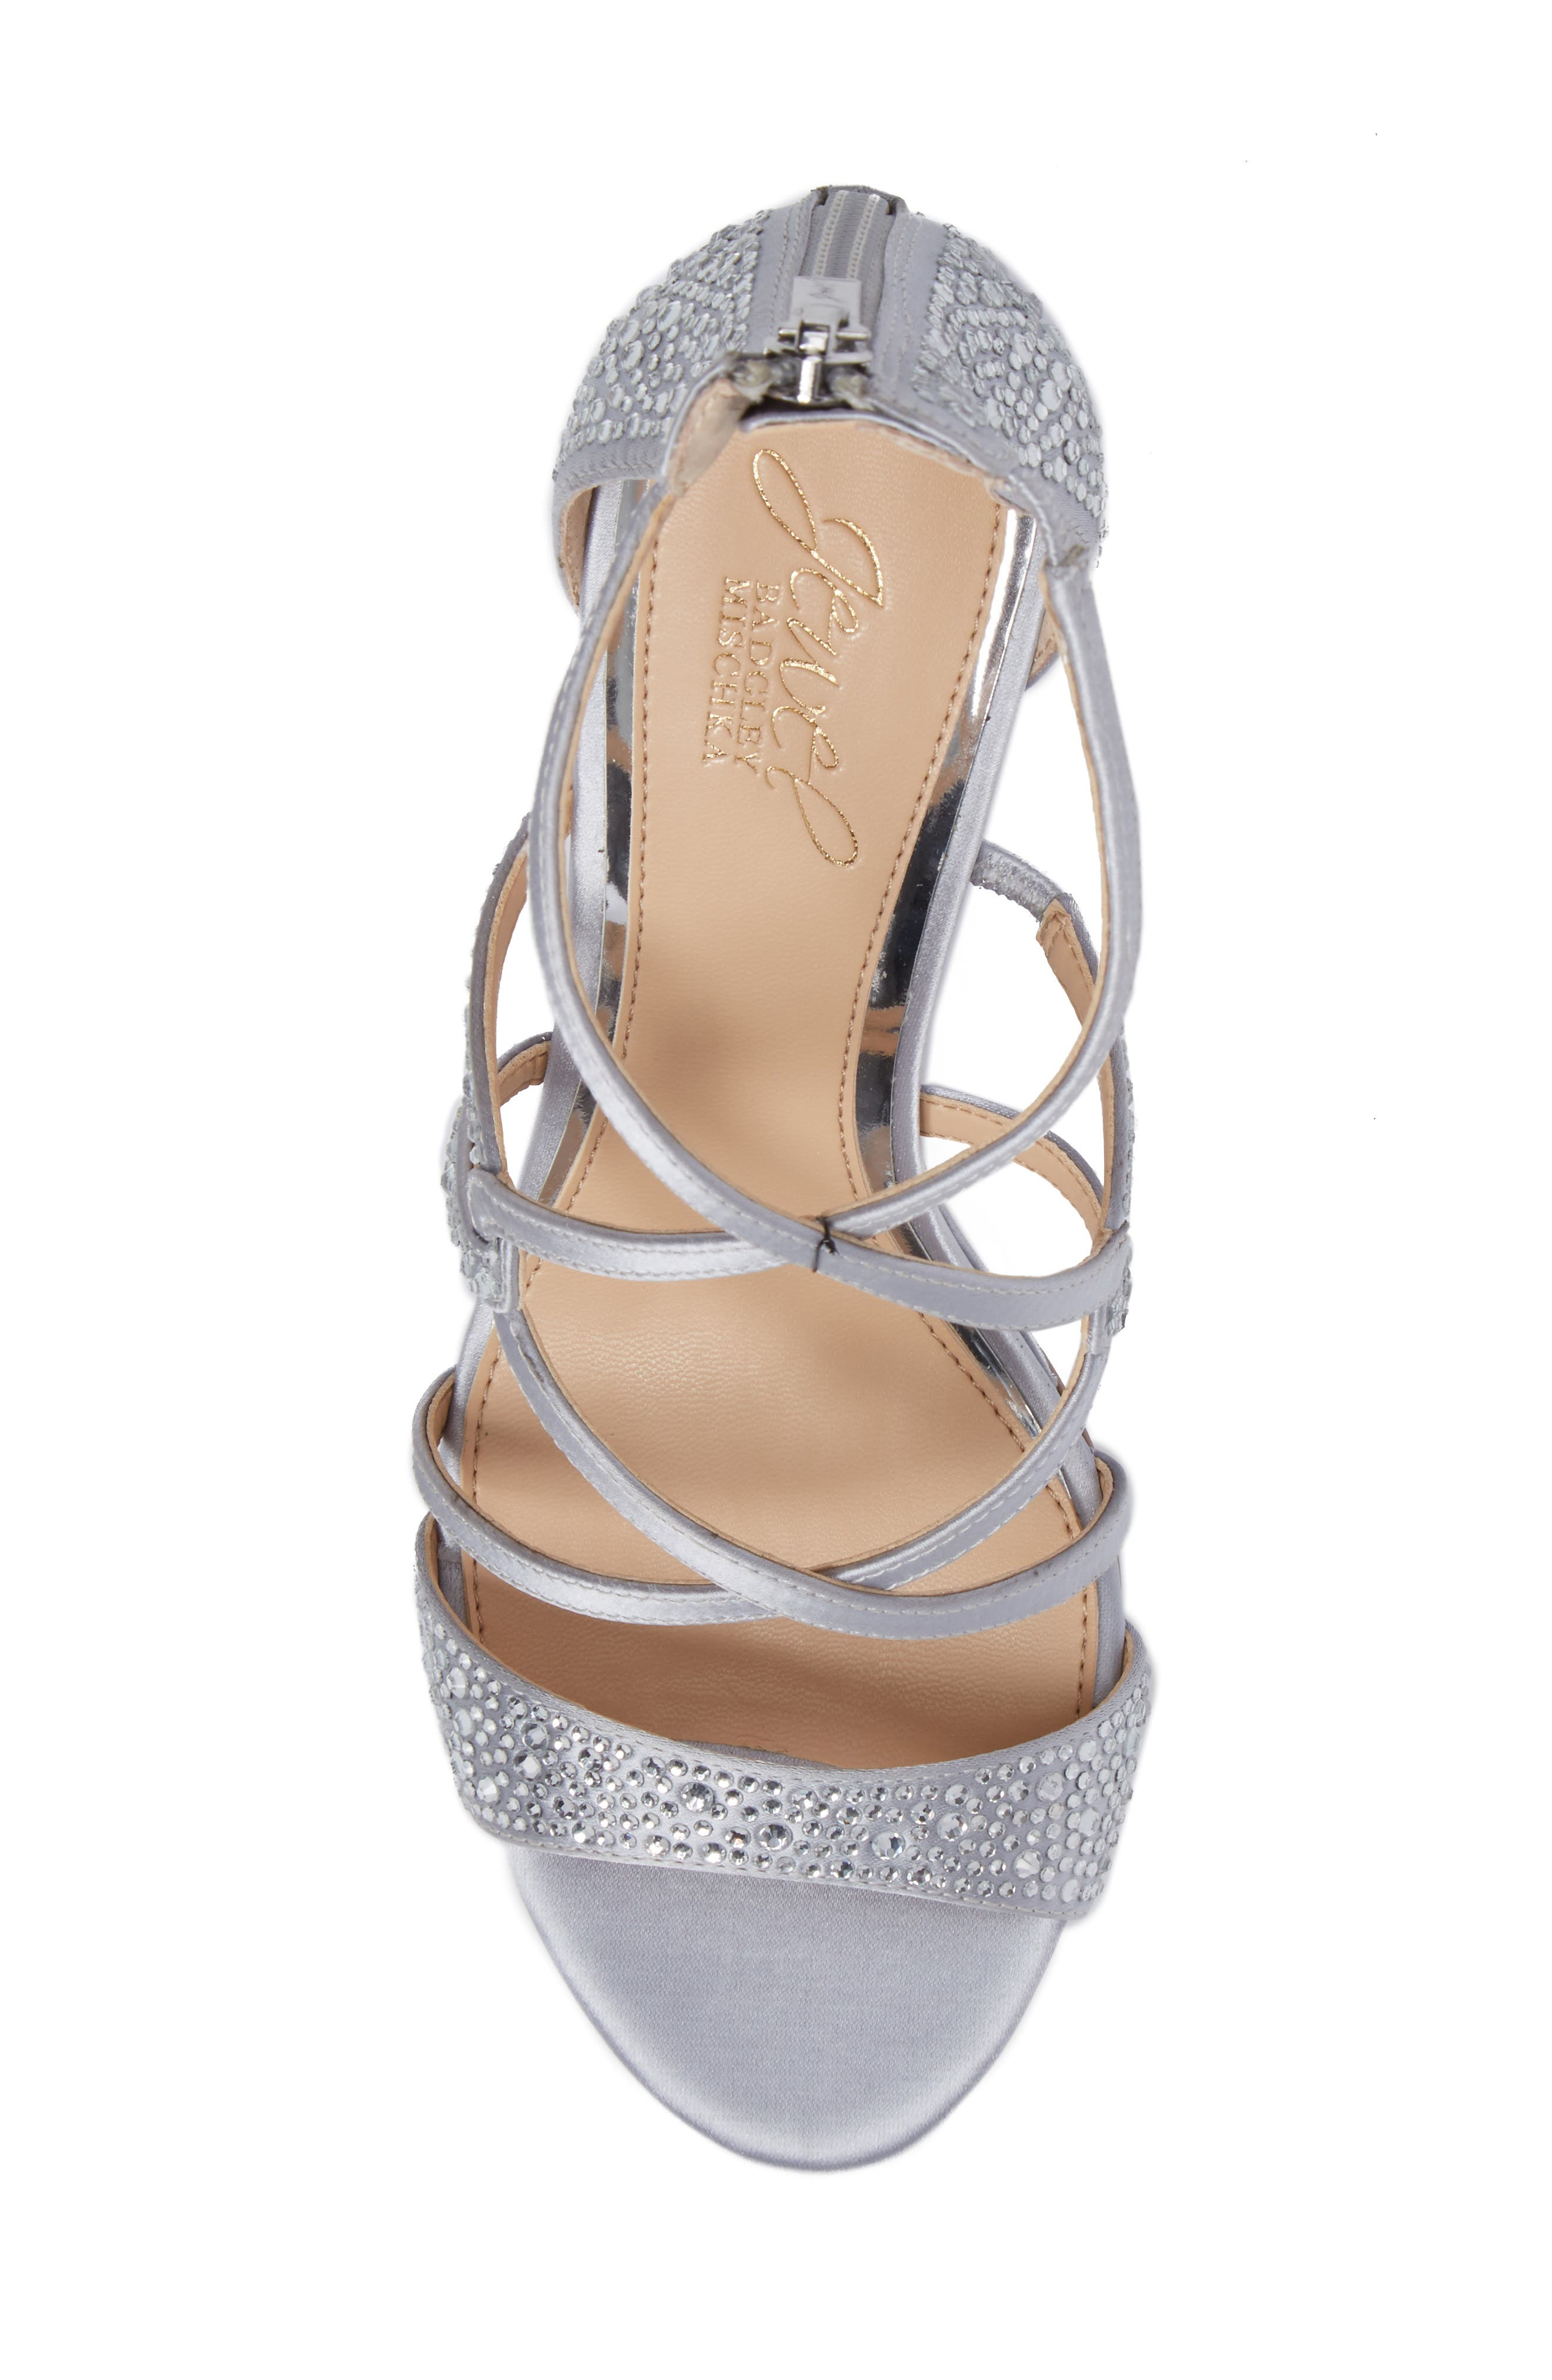 Ally II Embellished Wedge Sandal,                             Alternate thumbnail 5, color,                             Silver Satin